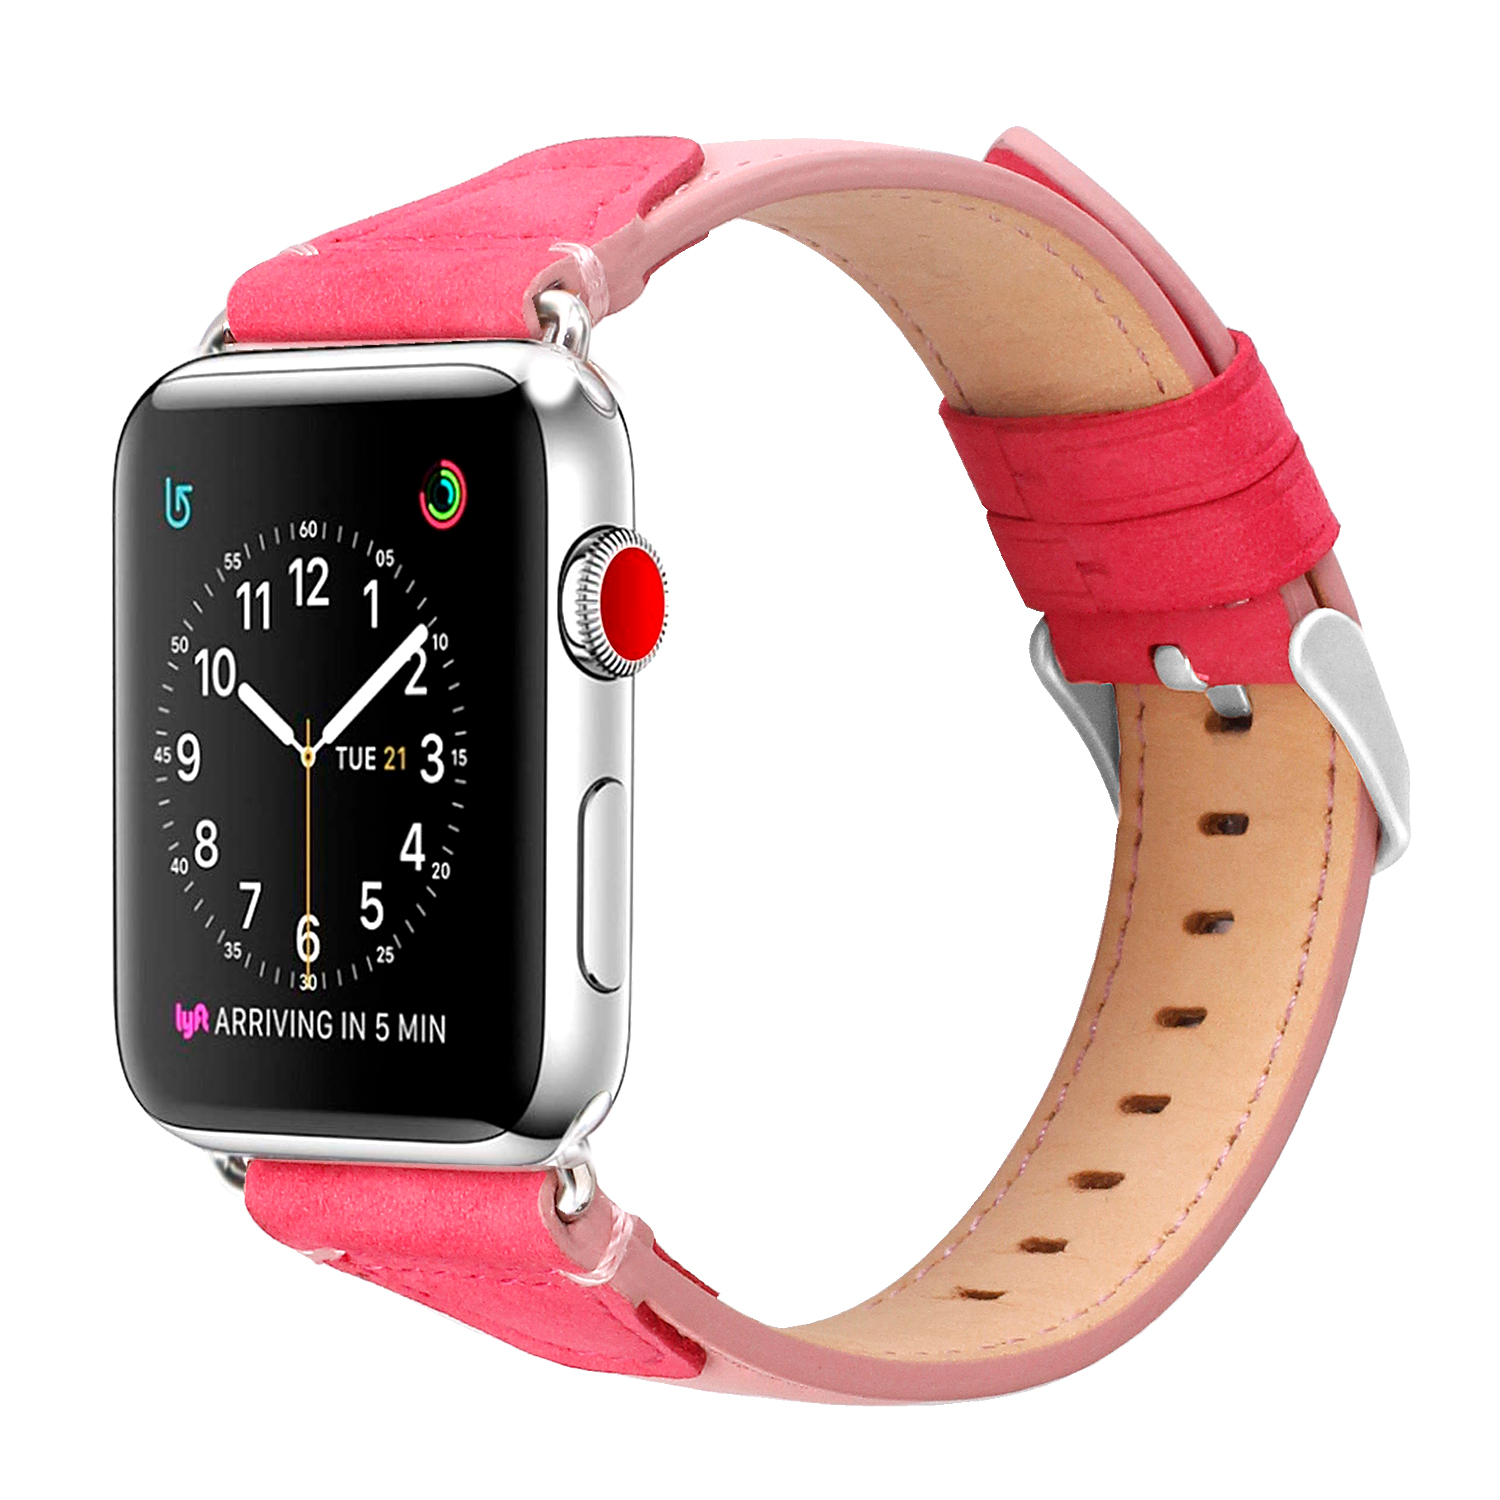 Amazon top seller 2019 pour apple iwatch bande, bracelet en cuir Véritable pour apple watch series 4 44mm